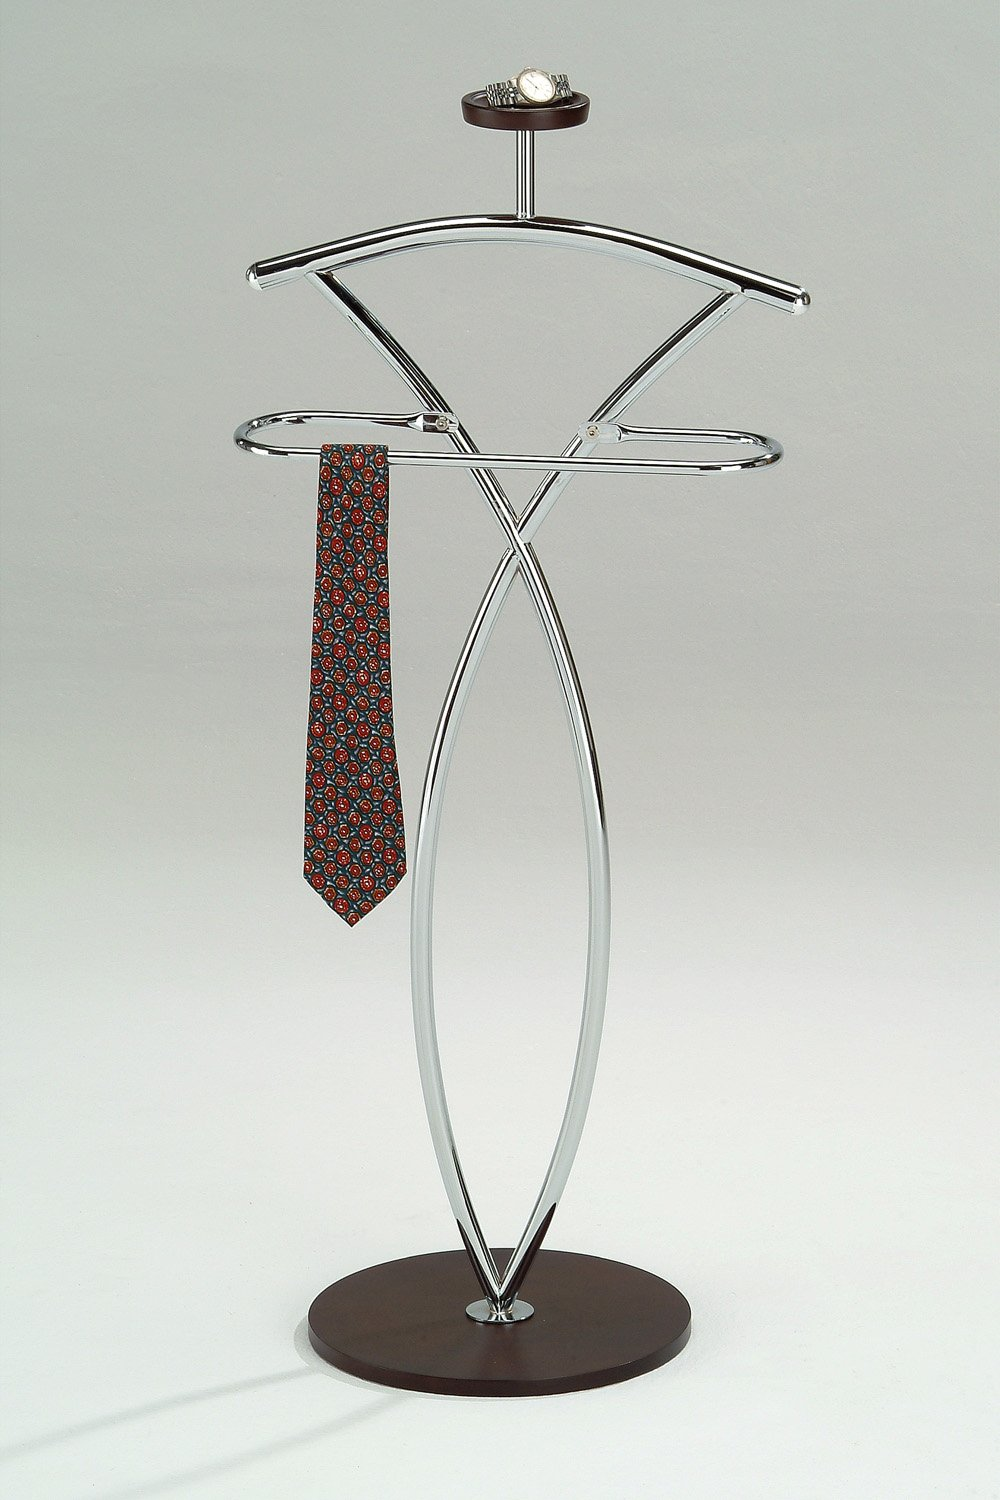 King's Brand Walnut Finish Wood & Metal Suit Valet Rack Stand Organizer by King's Brand